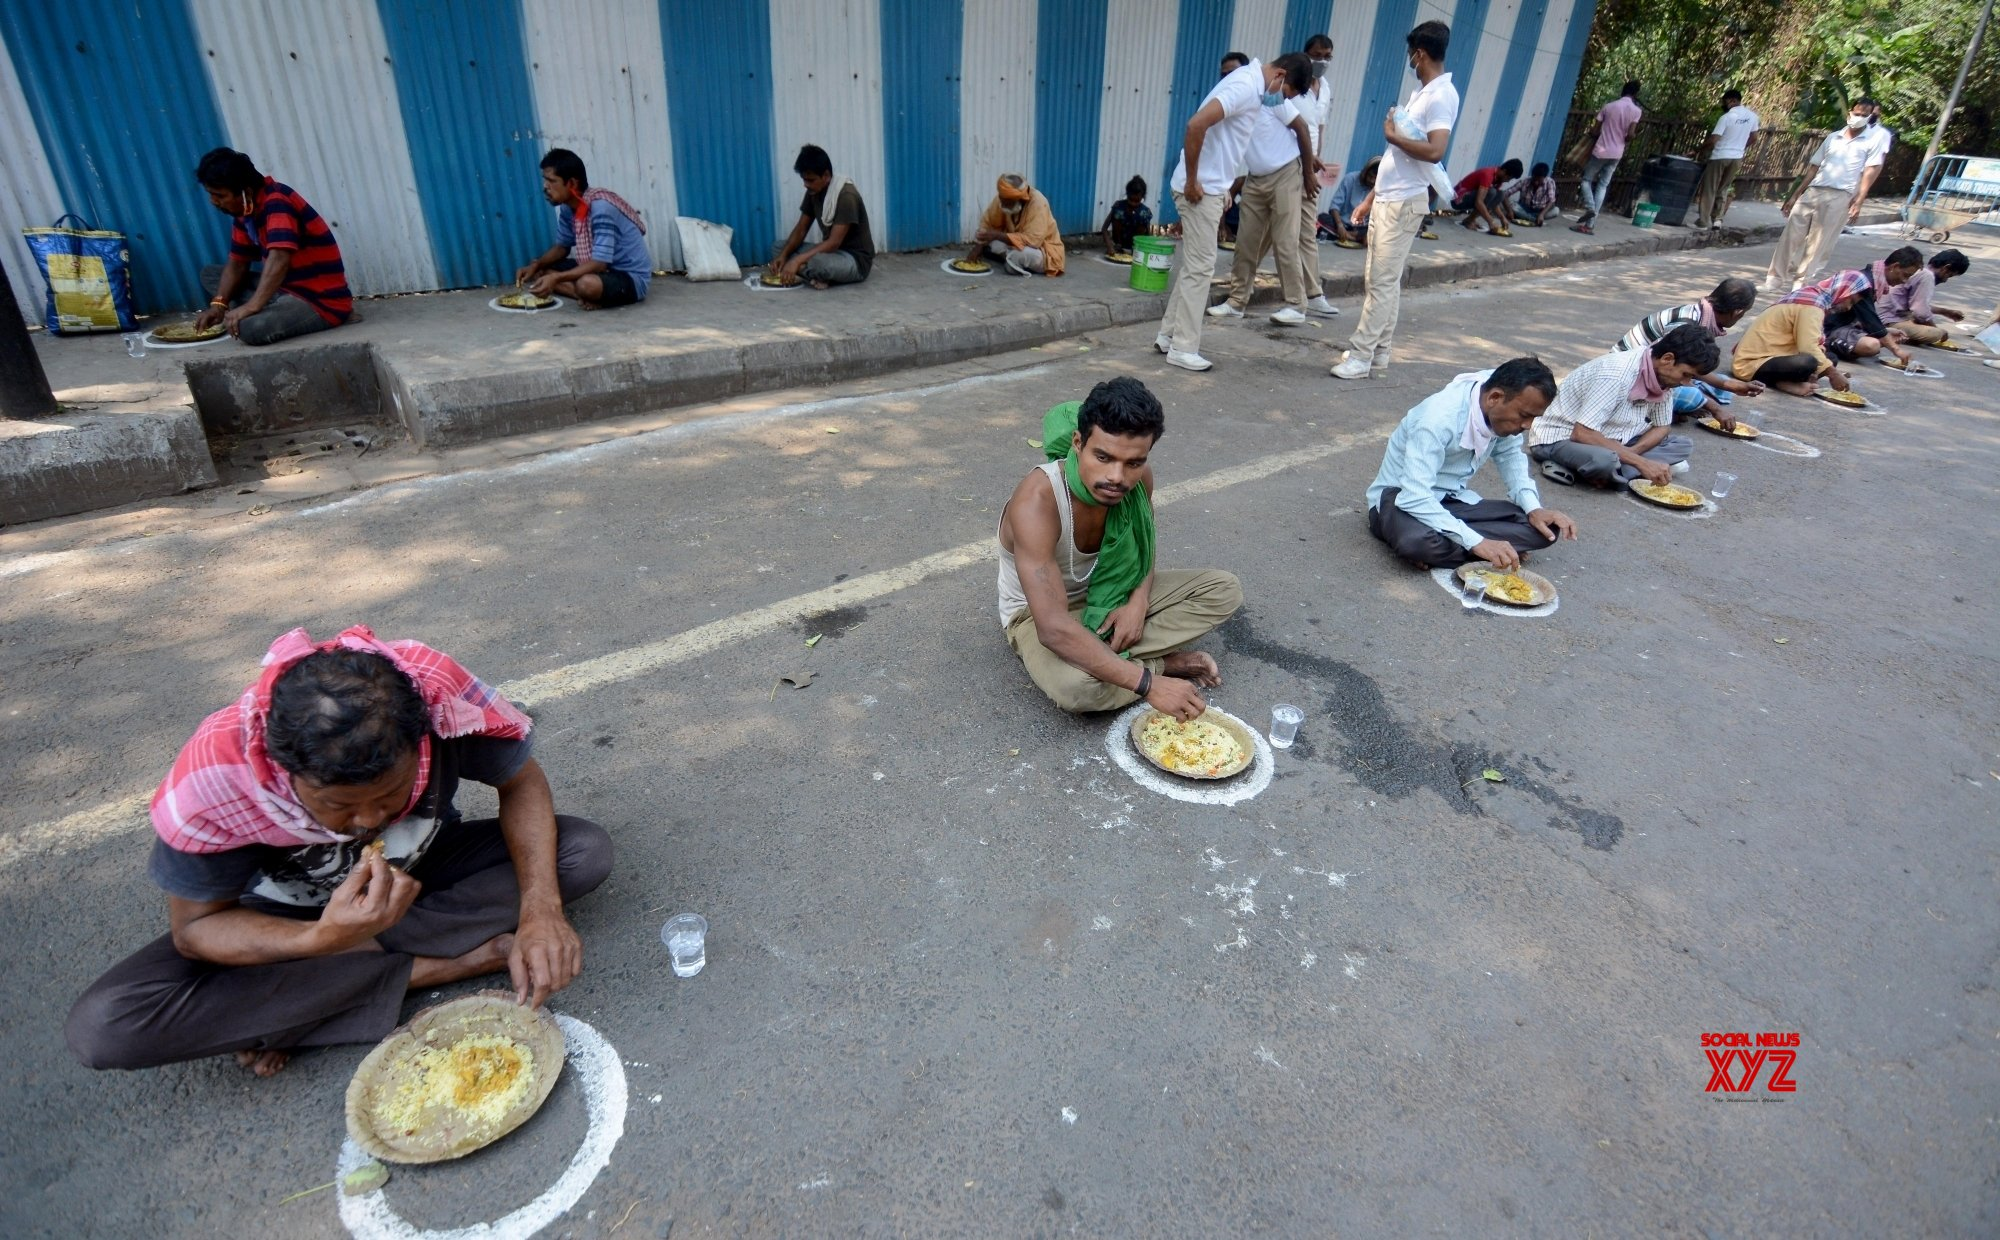 Kolkata: CRPF reaches out to the poor with food during lockdown #Gallery